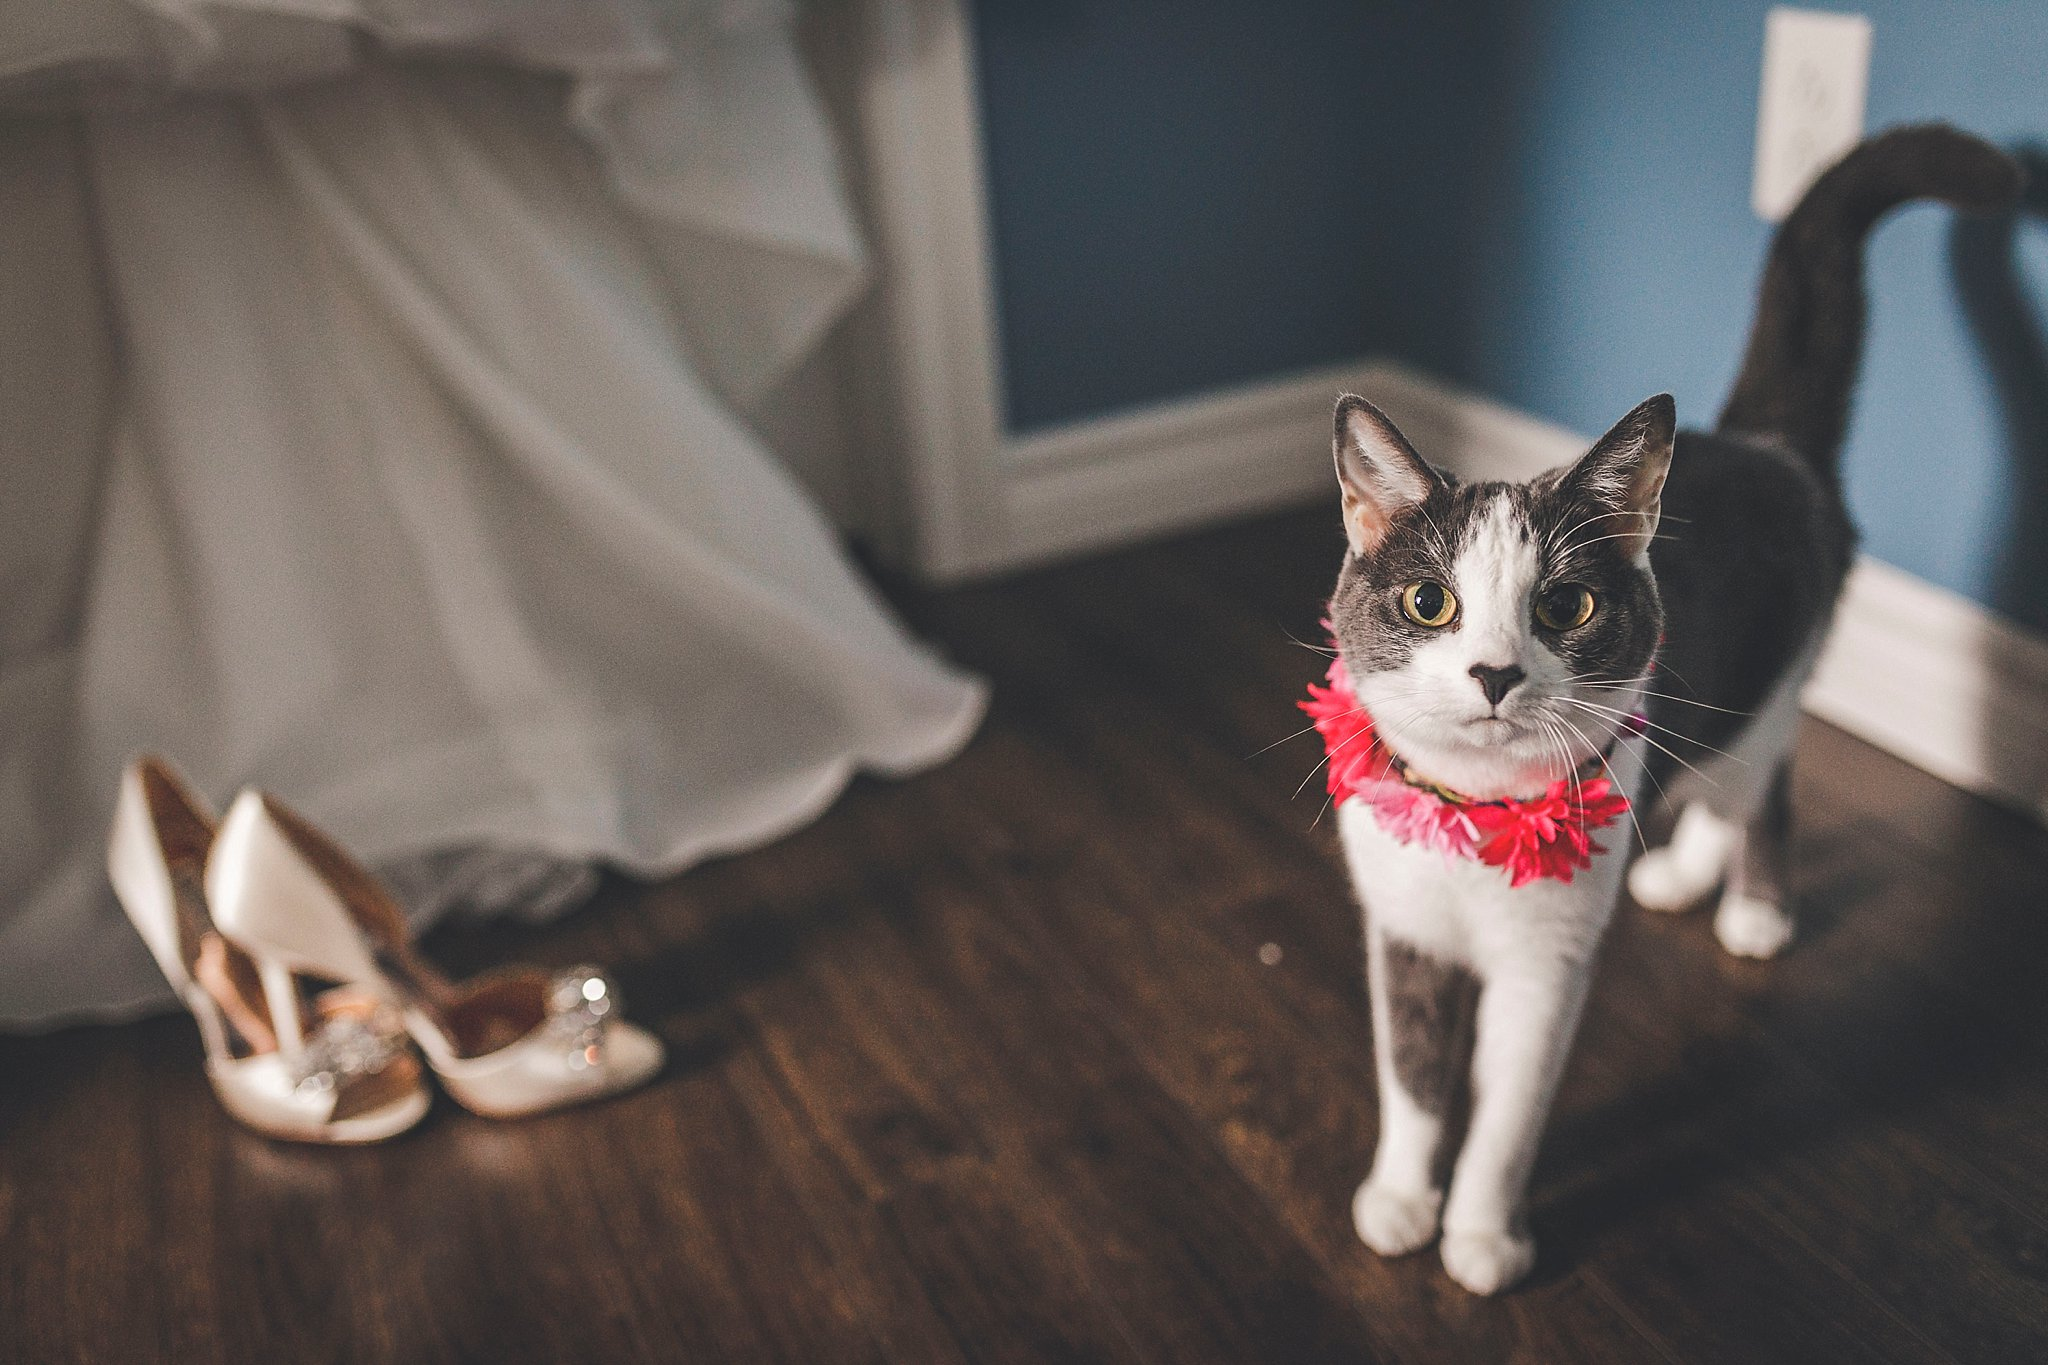 Dress, Shoes and Cat